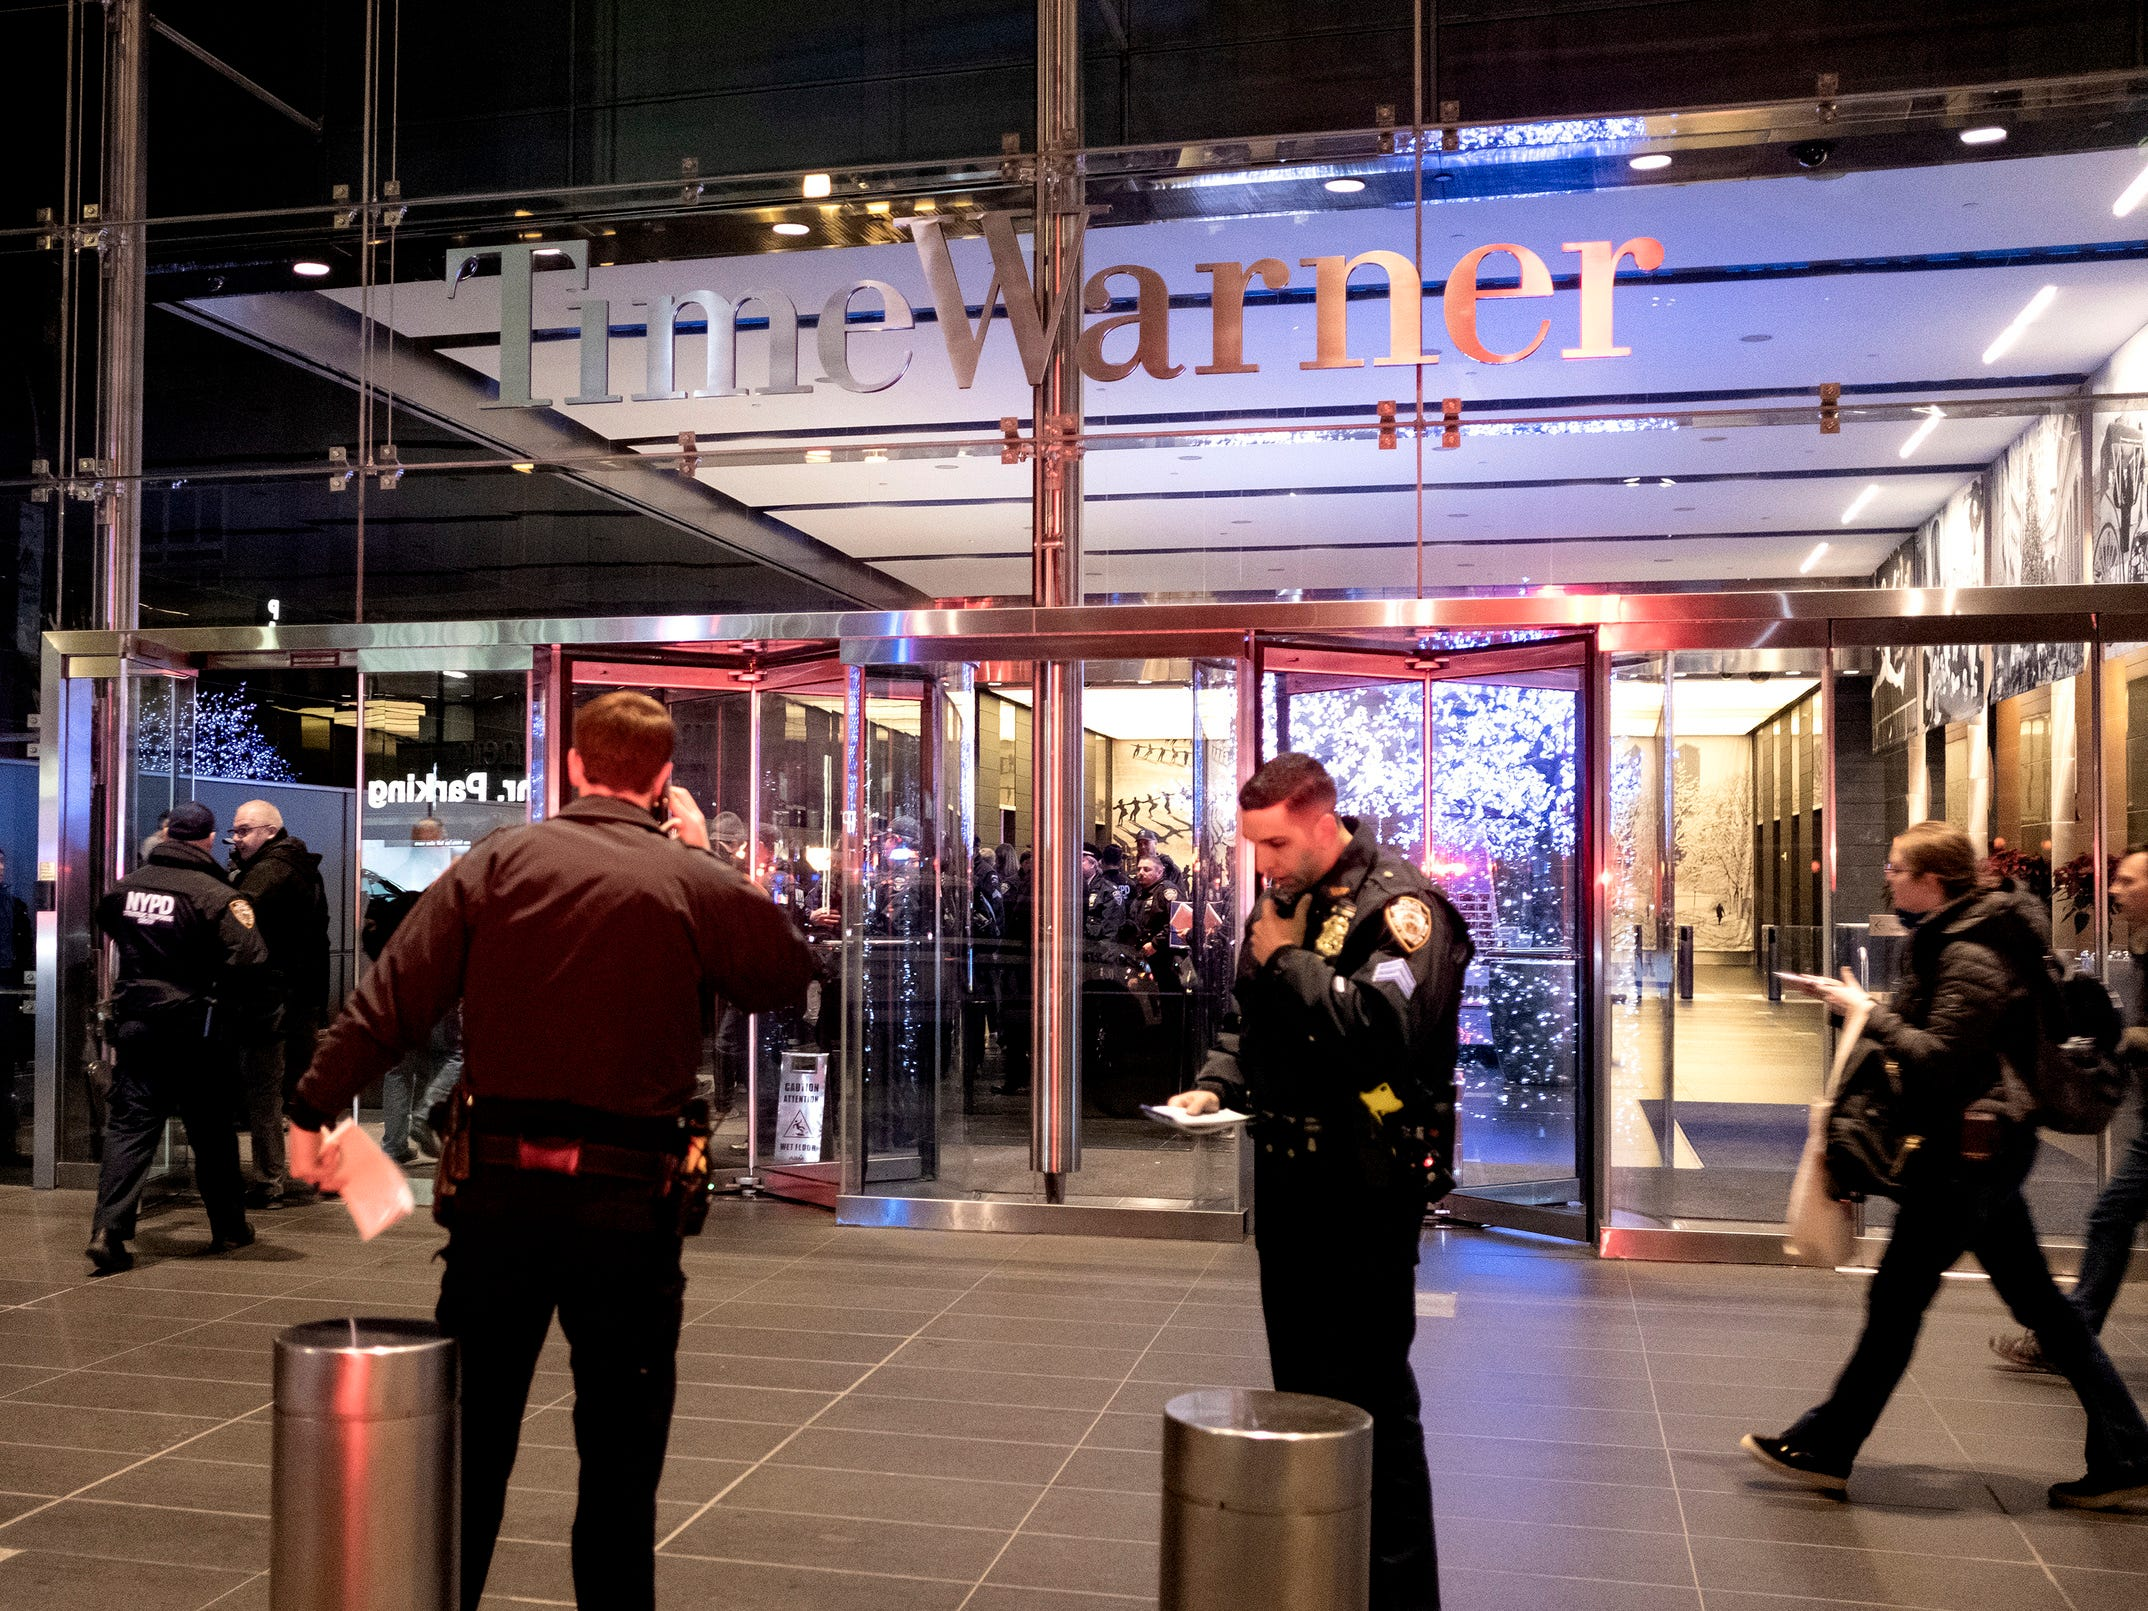 After it was determined the building was safe, New York City police officers stand by at the Time Warner Center as people reenter the lobby in New York Thursday, Dec. 6, 2018, after a bomb threat was called into the building and occupants were evacuated, including CNN employees. Police units swept the building with the NYPD bomb squad on standby.